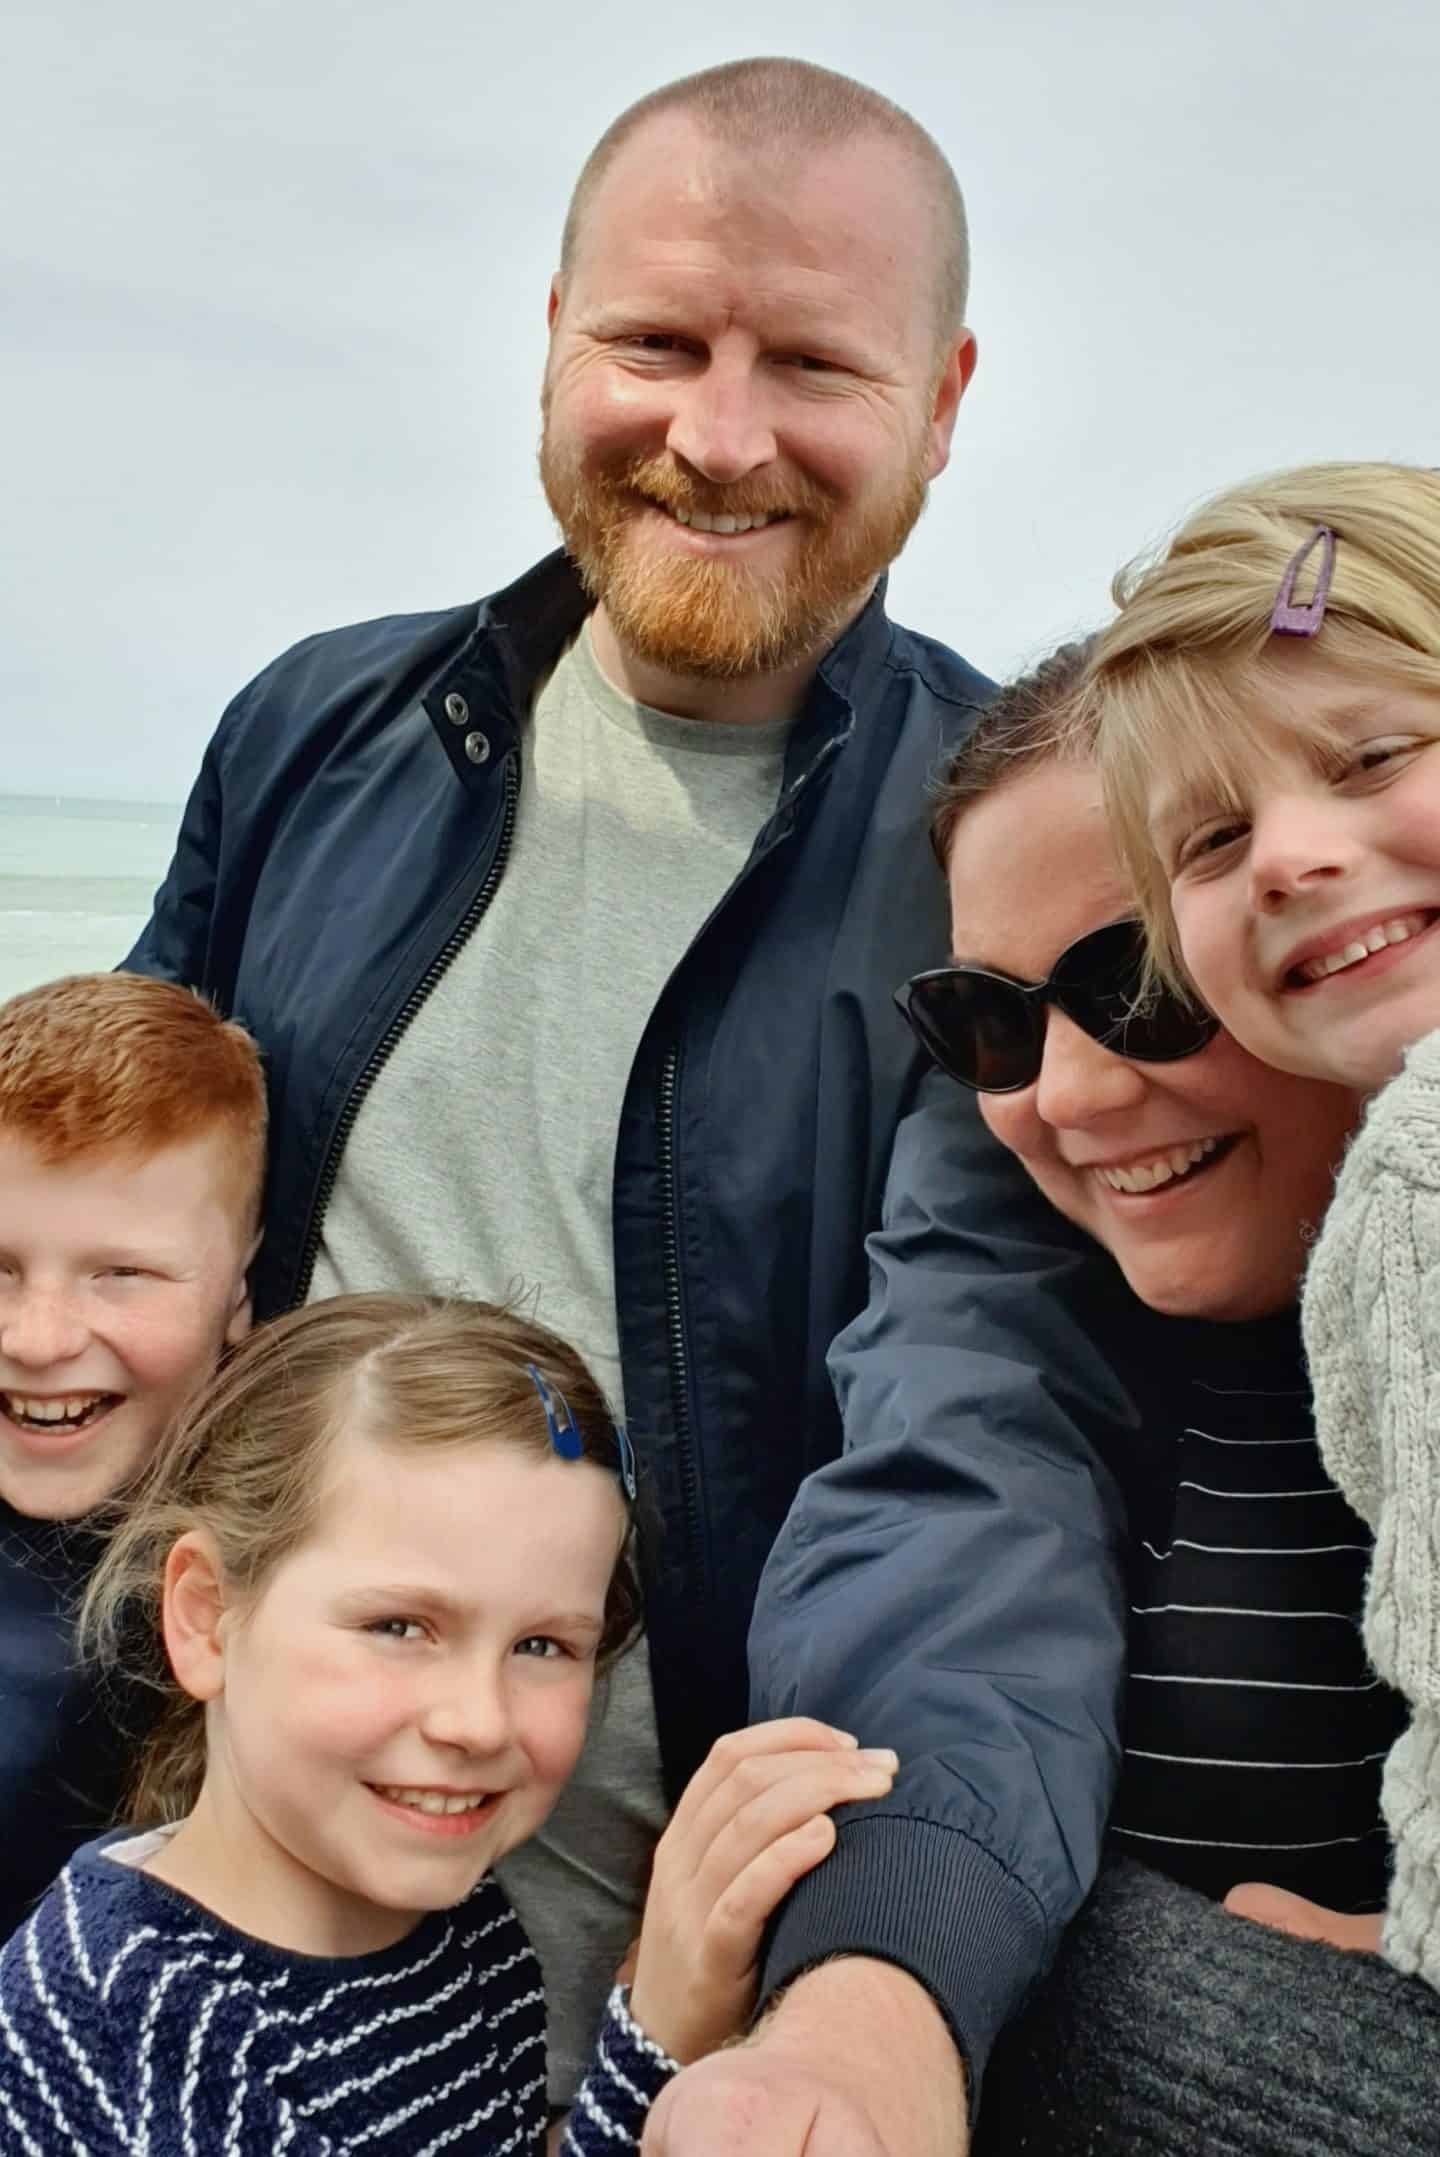 We're going on an adventure family photo on the ferry to France - May 2019 Me & Mine